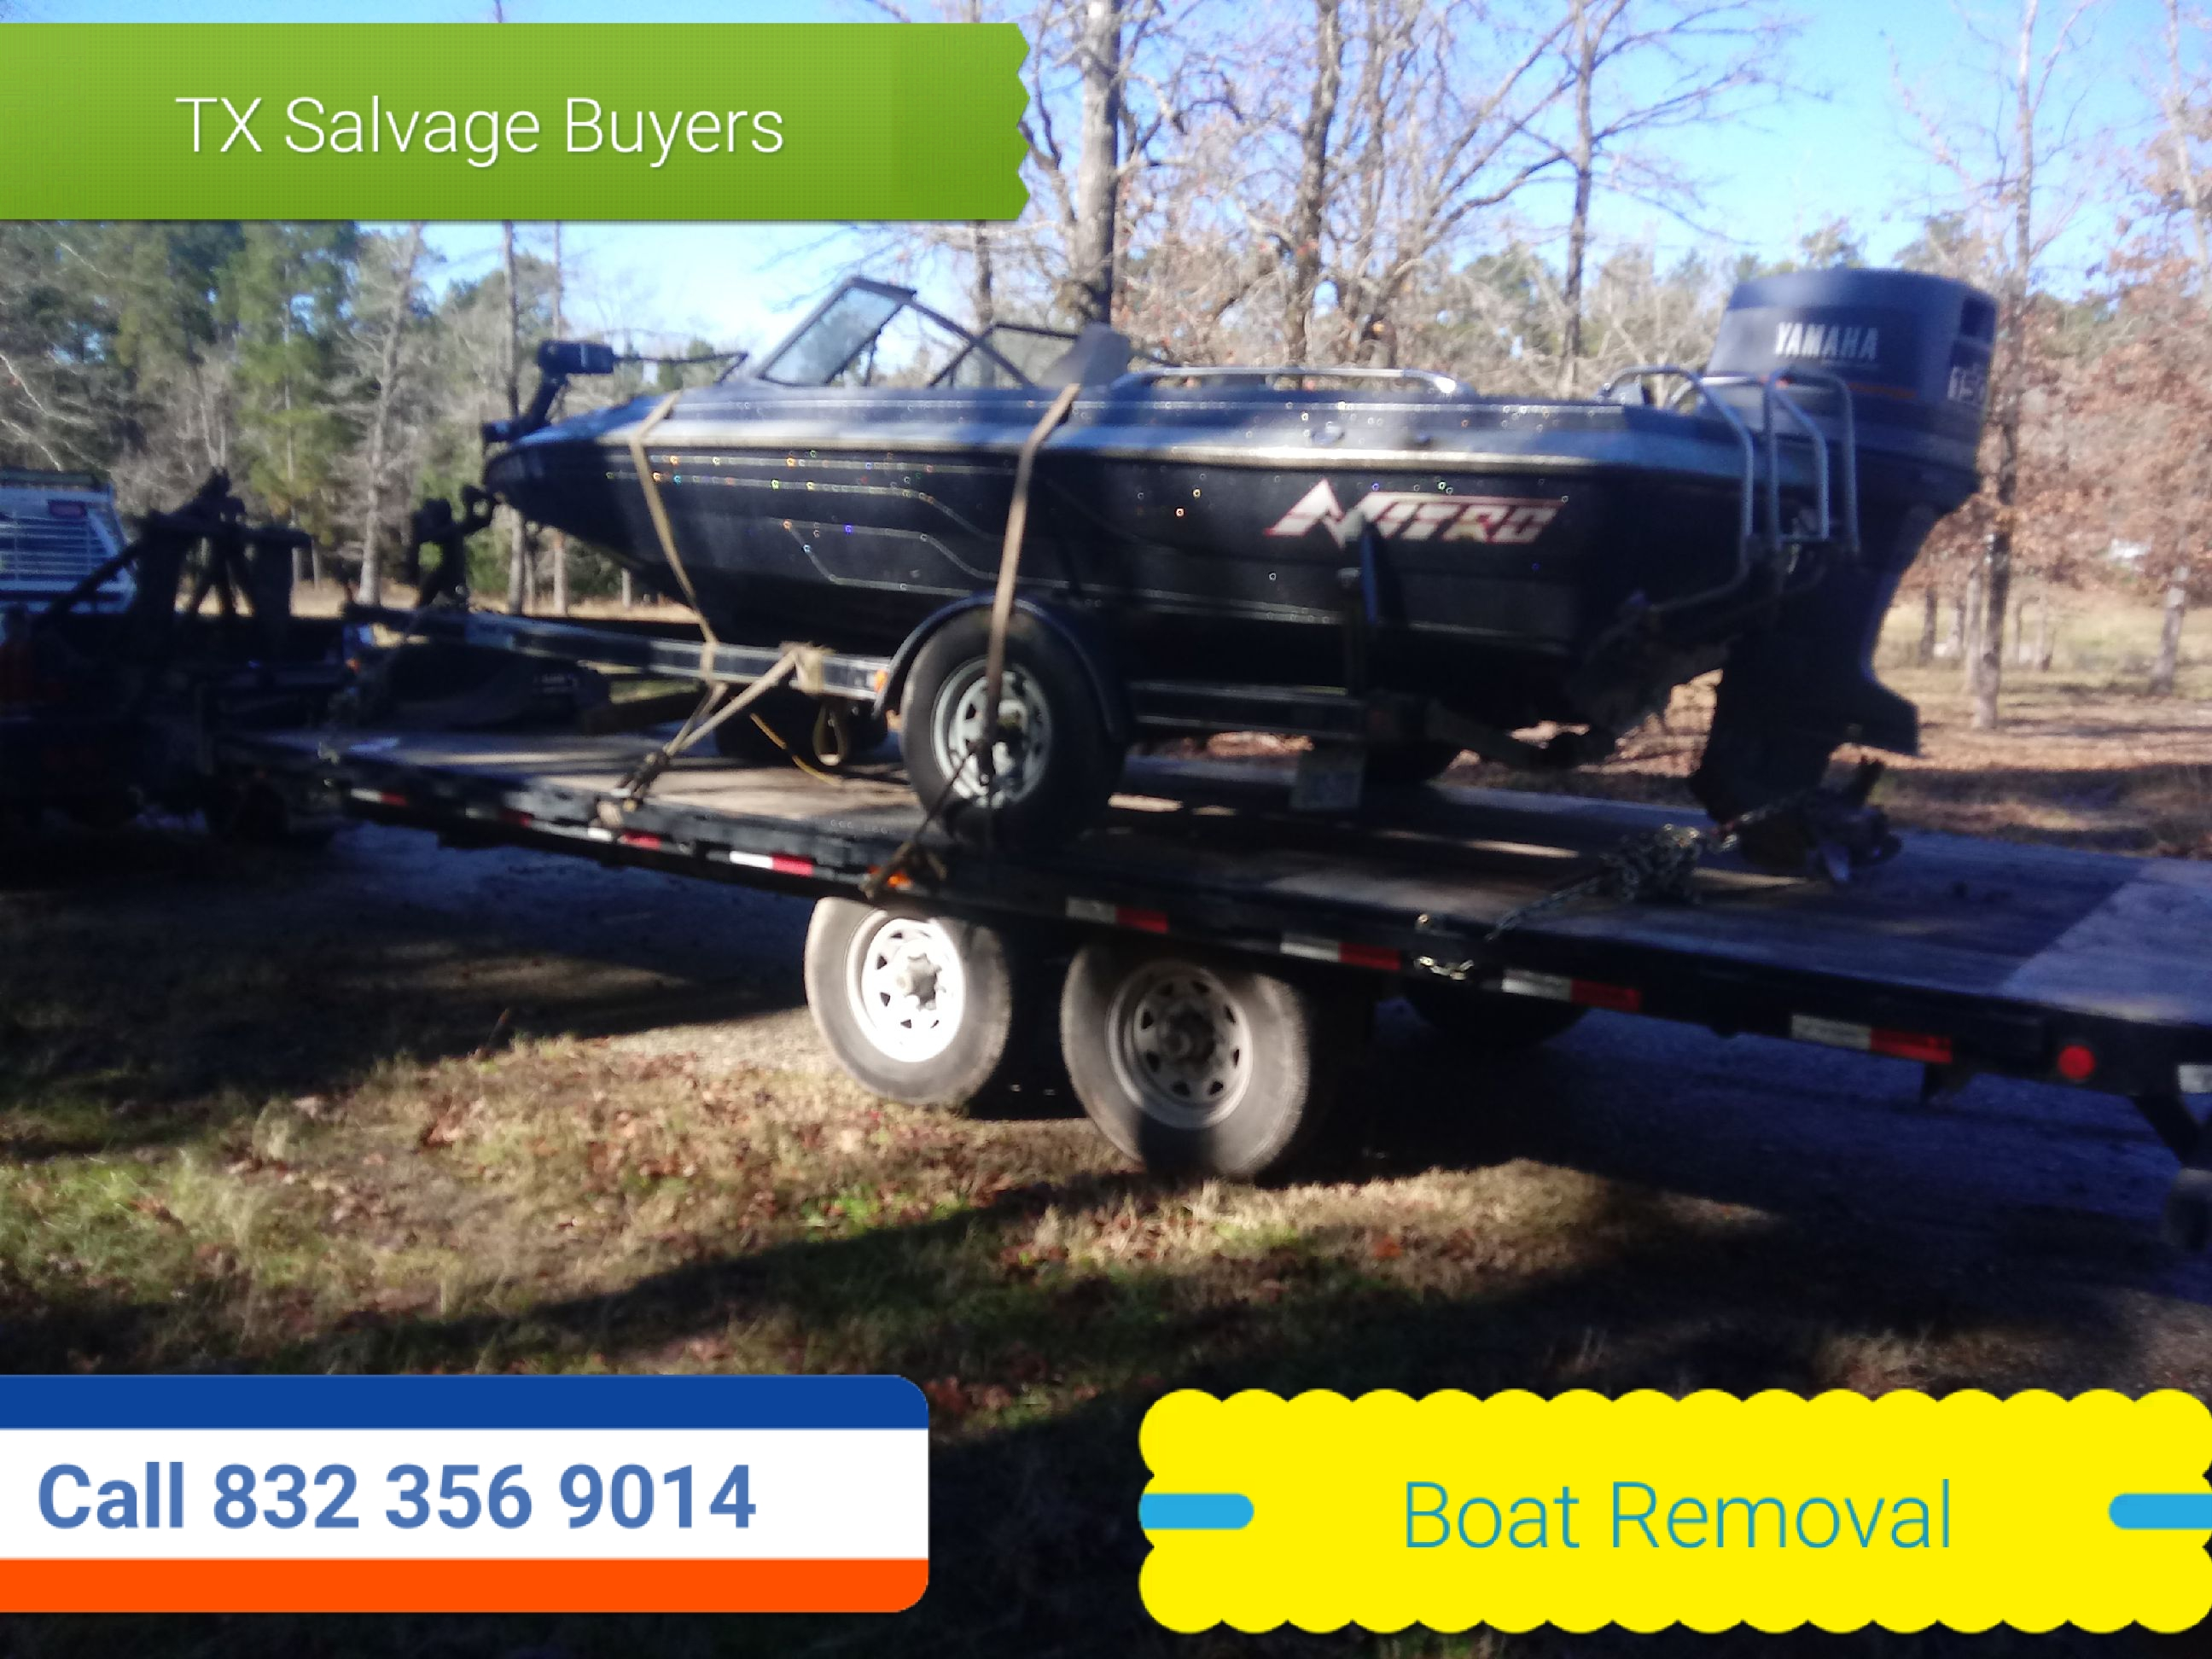 Boat Removal - Boat Disposal Austin Texas